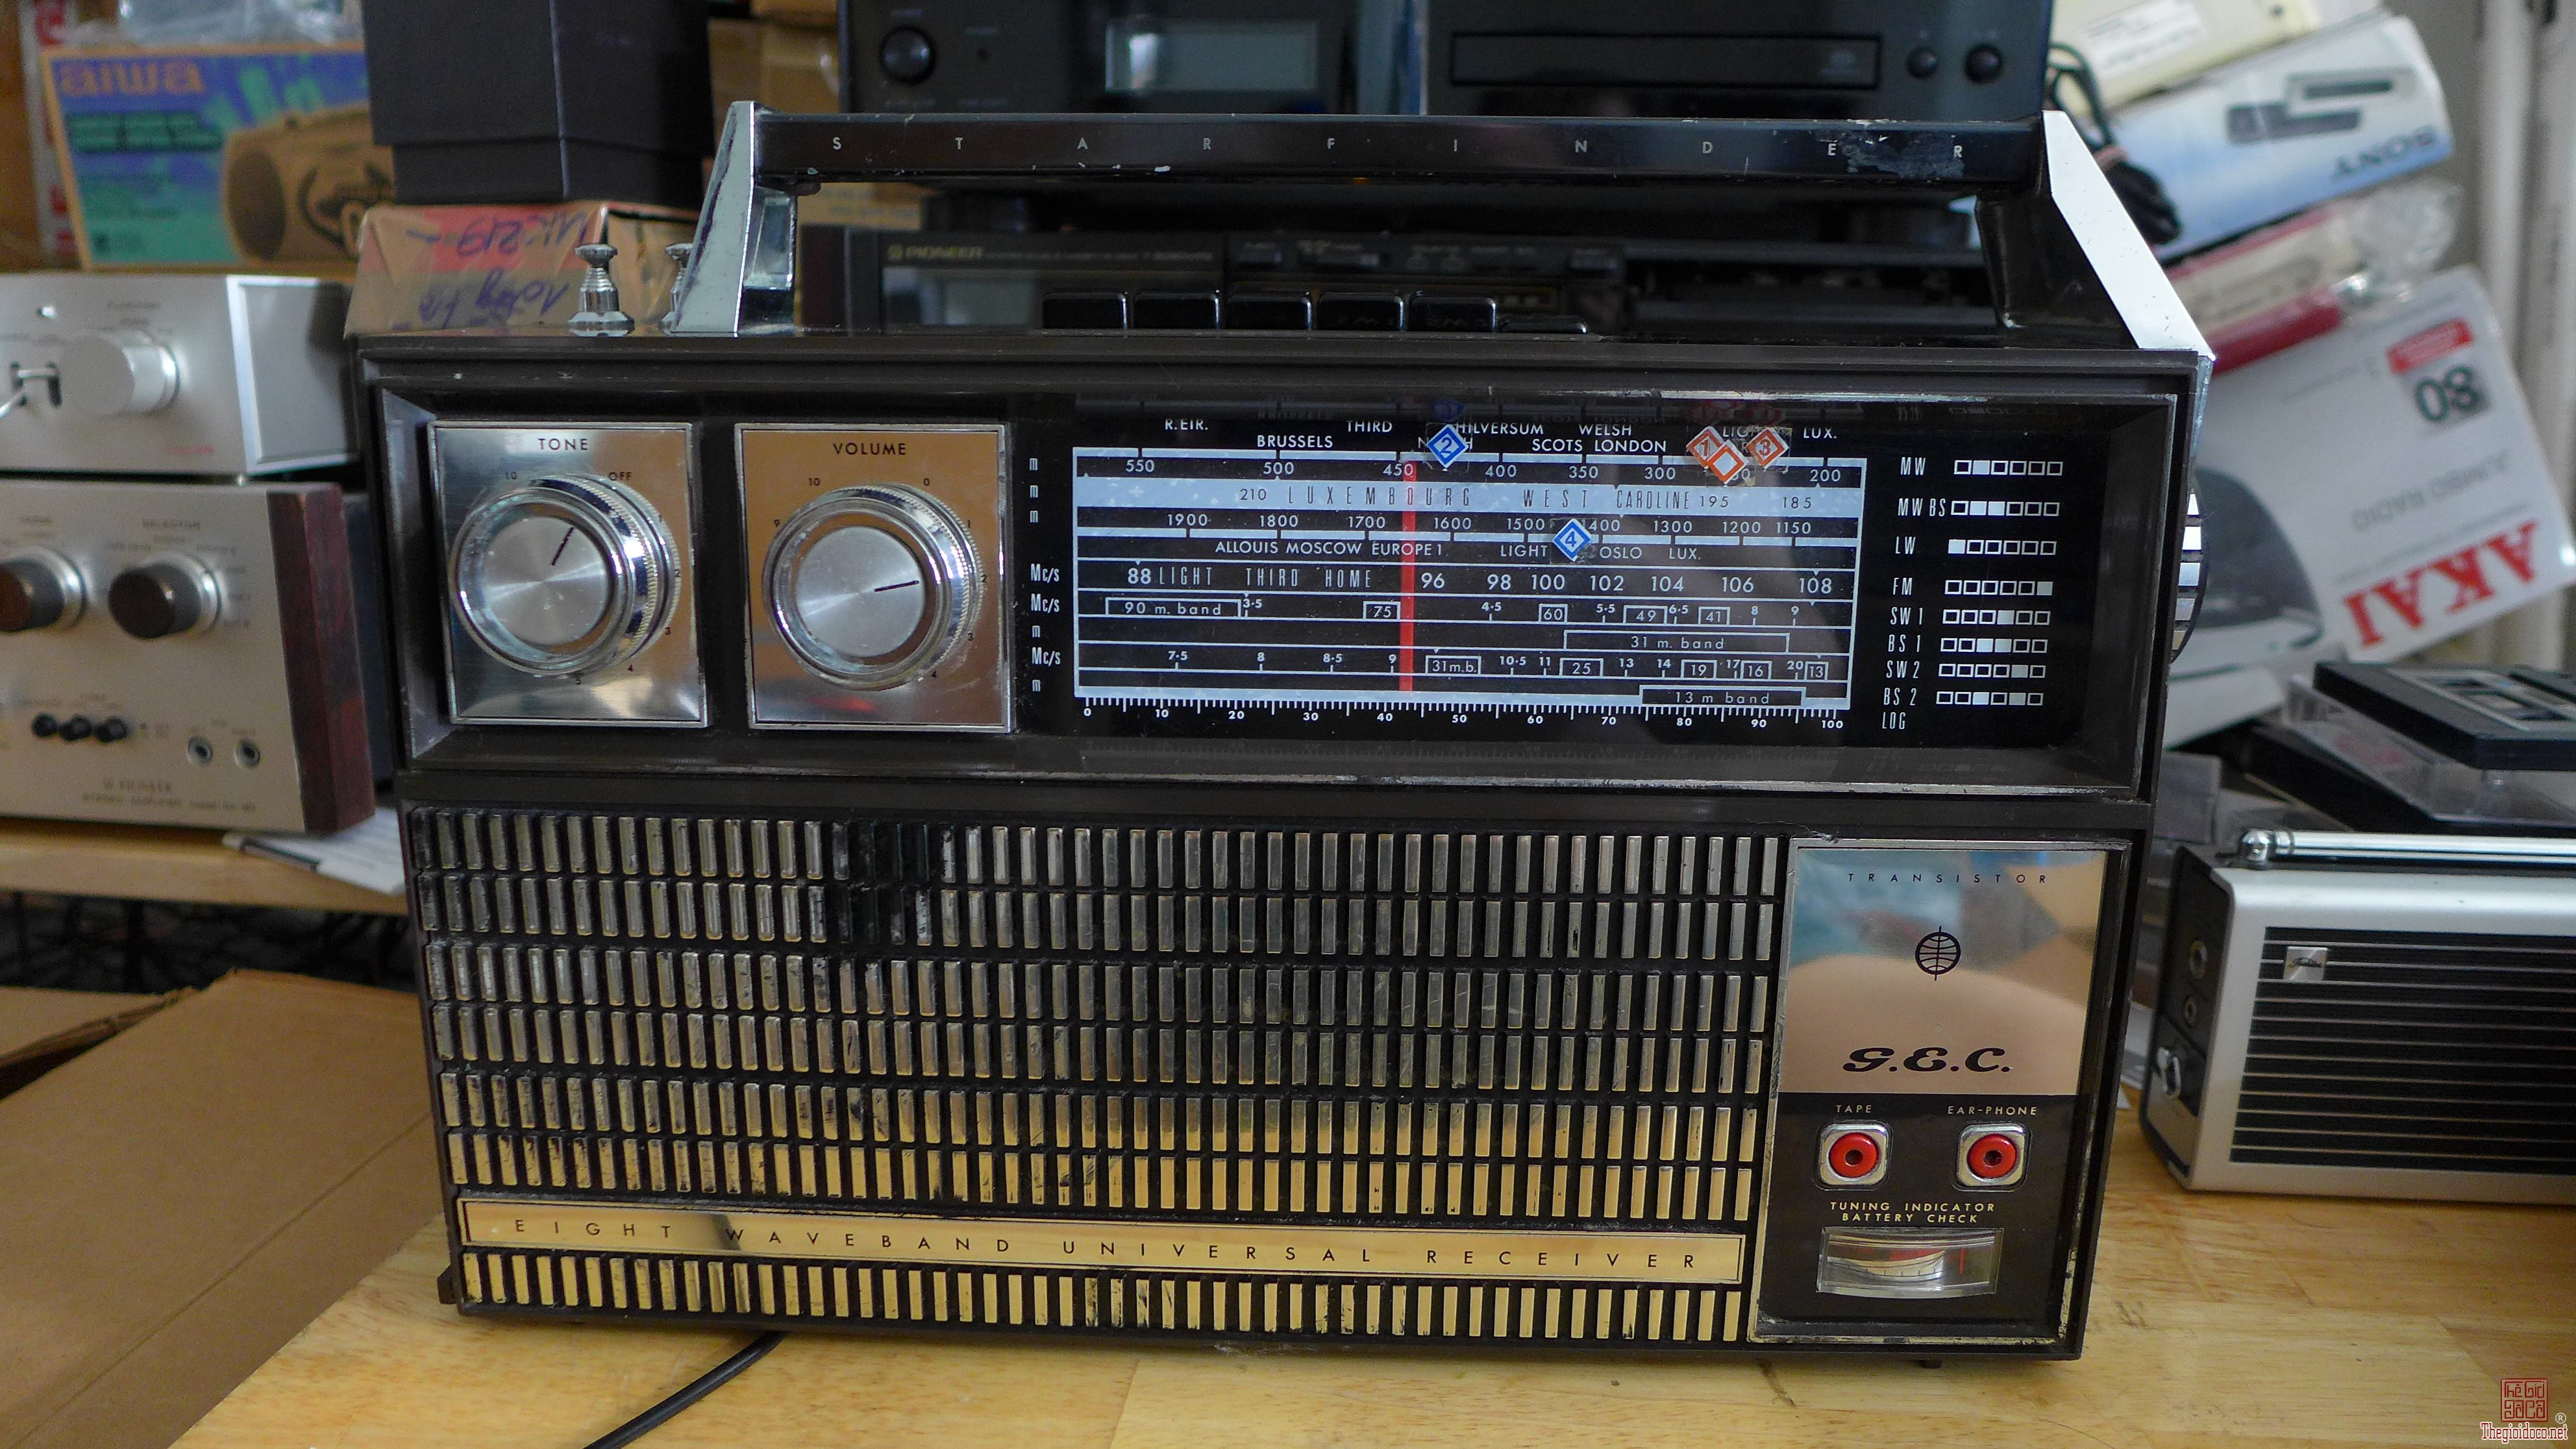 HCM - Q10 - Bán radio GEC G-820 Starfinder - 8 band tầng . Made in GB.